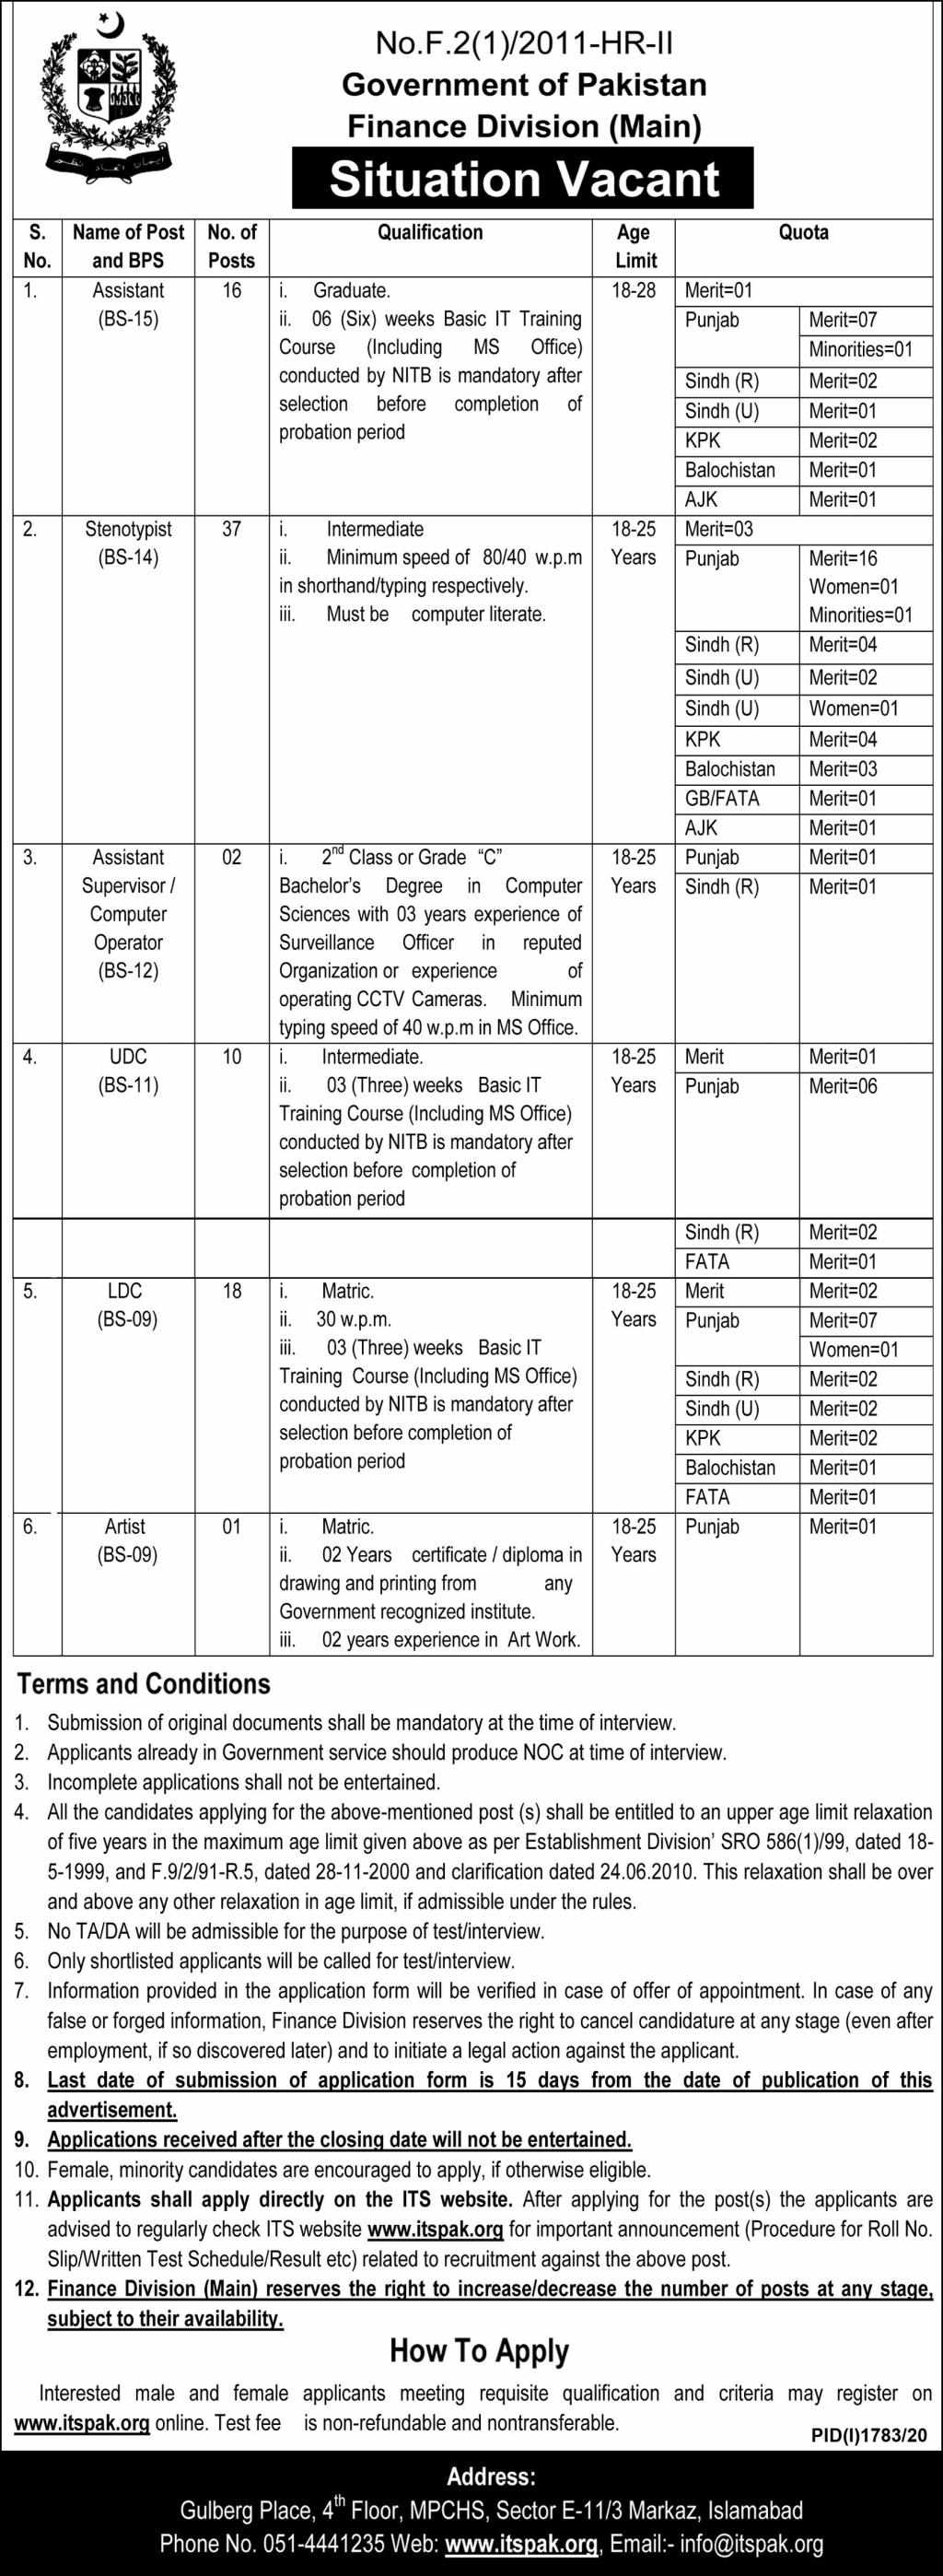 84 vacant Posts in Finance Division, Government of Pakistan Jobs 2020 | itspak